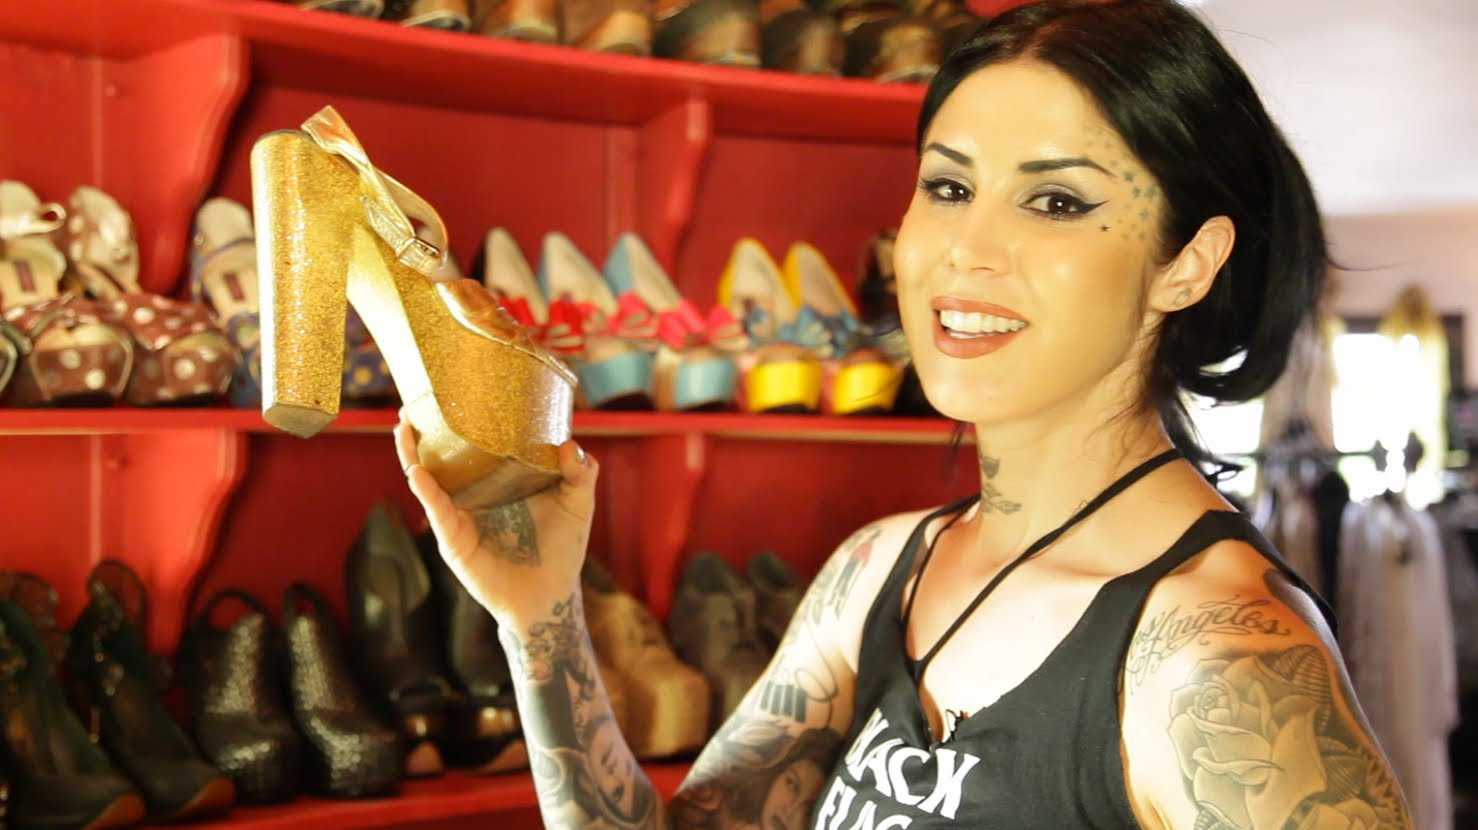 Kat Von D Announces 28 Vegan Shoe Styles in Upcoming Footwear Range